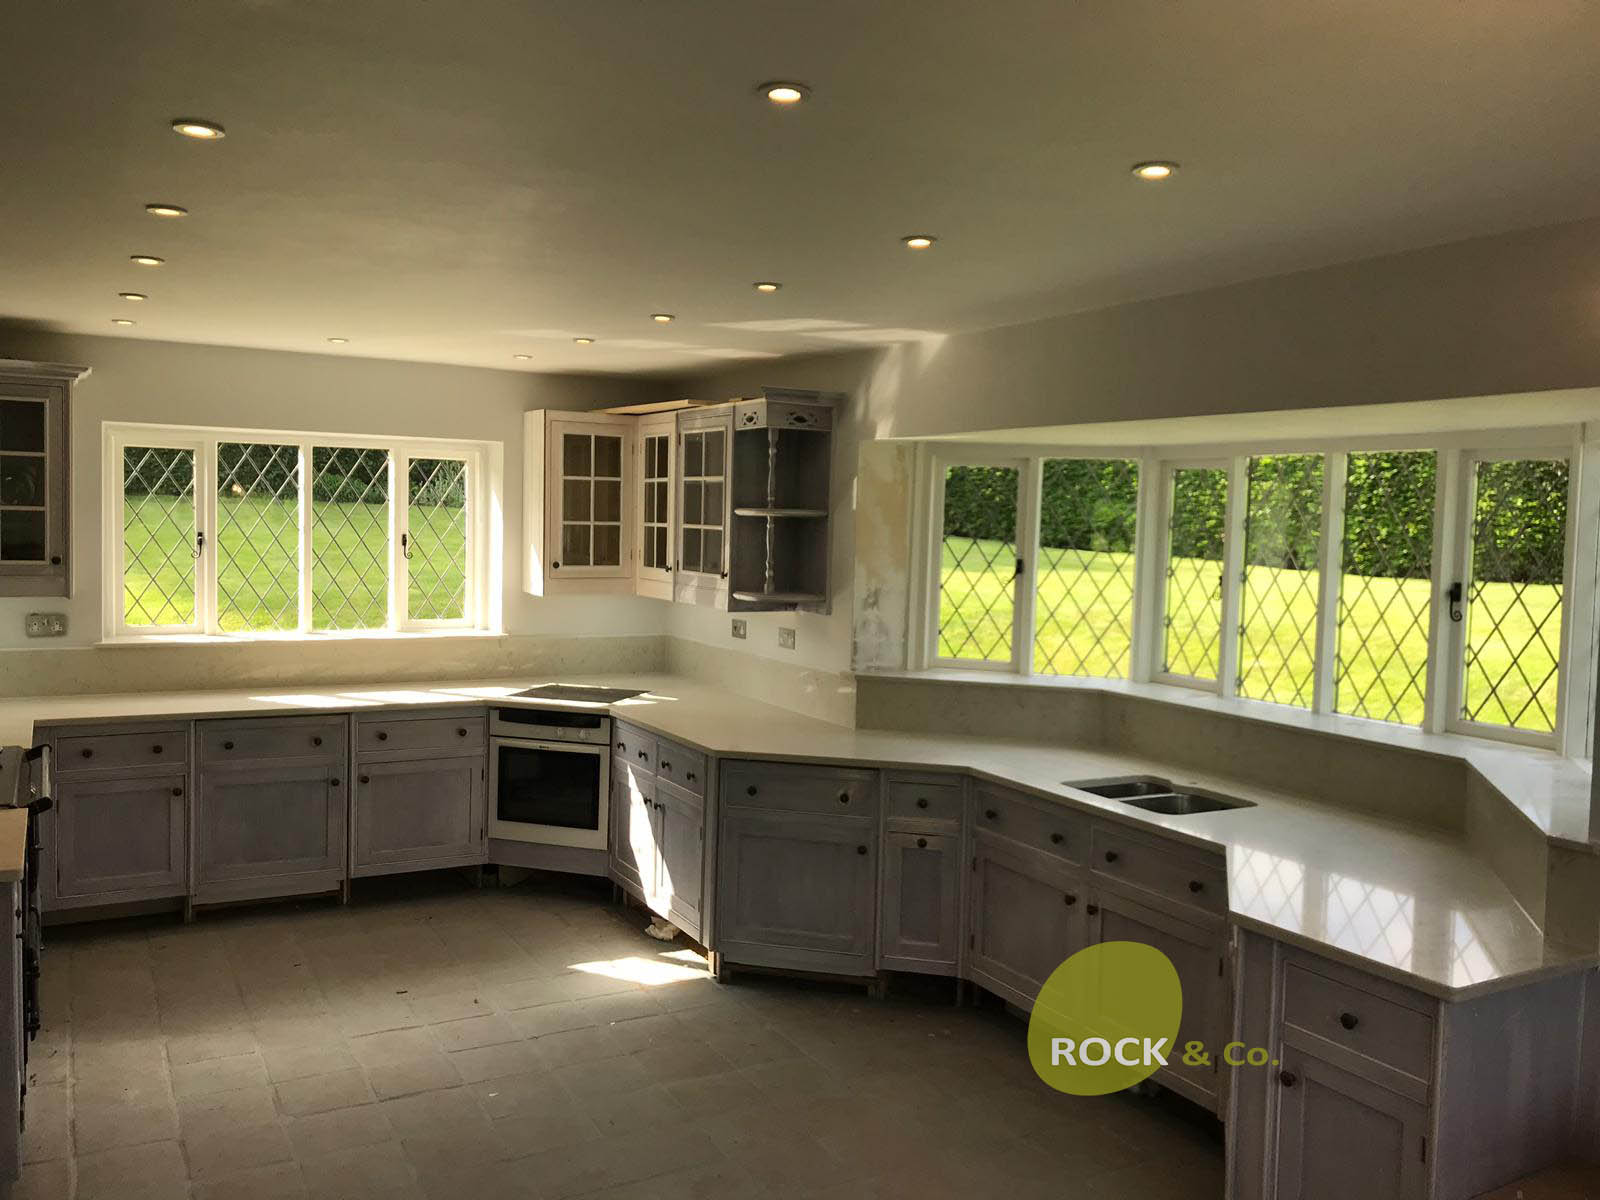 Kitchen of the week… Located in Ringshall, Buckinghamshire, showcasing the Crema Vena